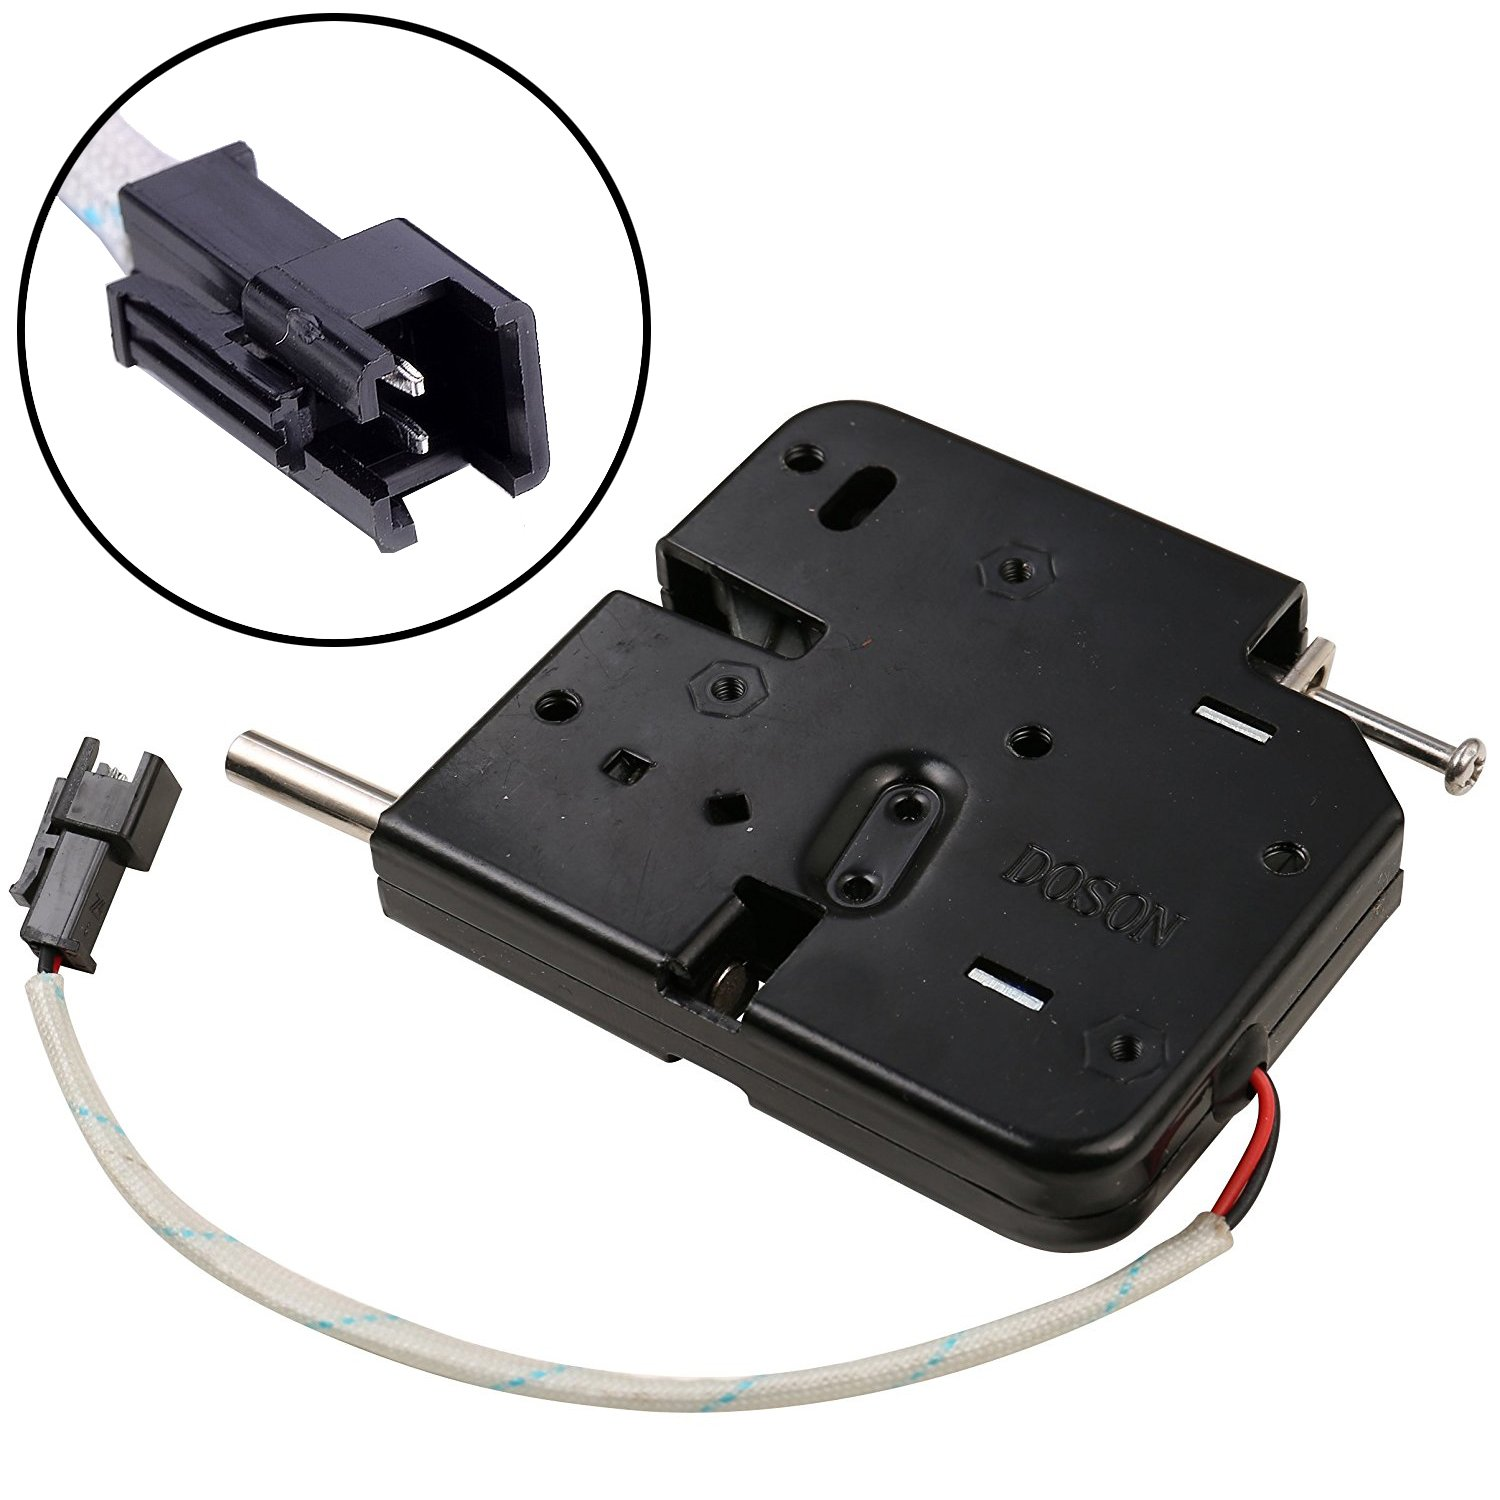 UHPPOTE DC12V Intelligent Electric Solenoid Lock For Automatic Drawer Cabinet Sell-machine Door by UHPPOTE (Image #5)